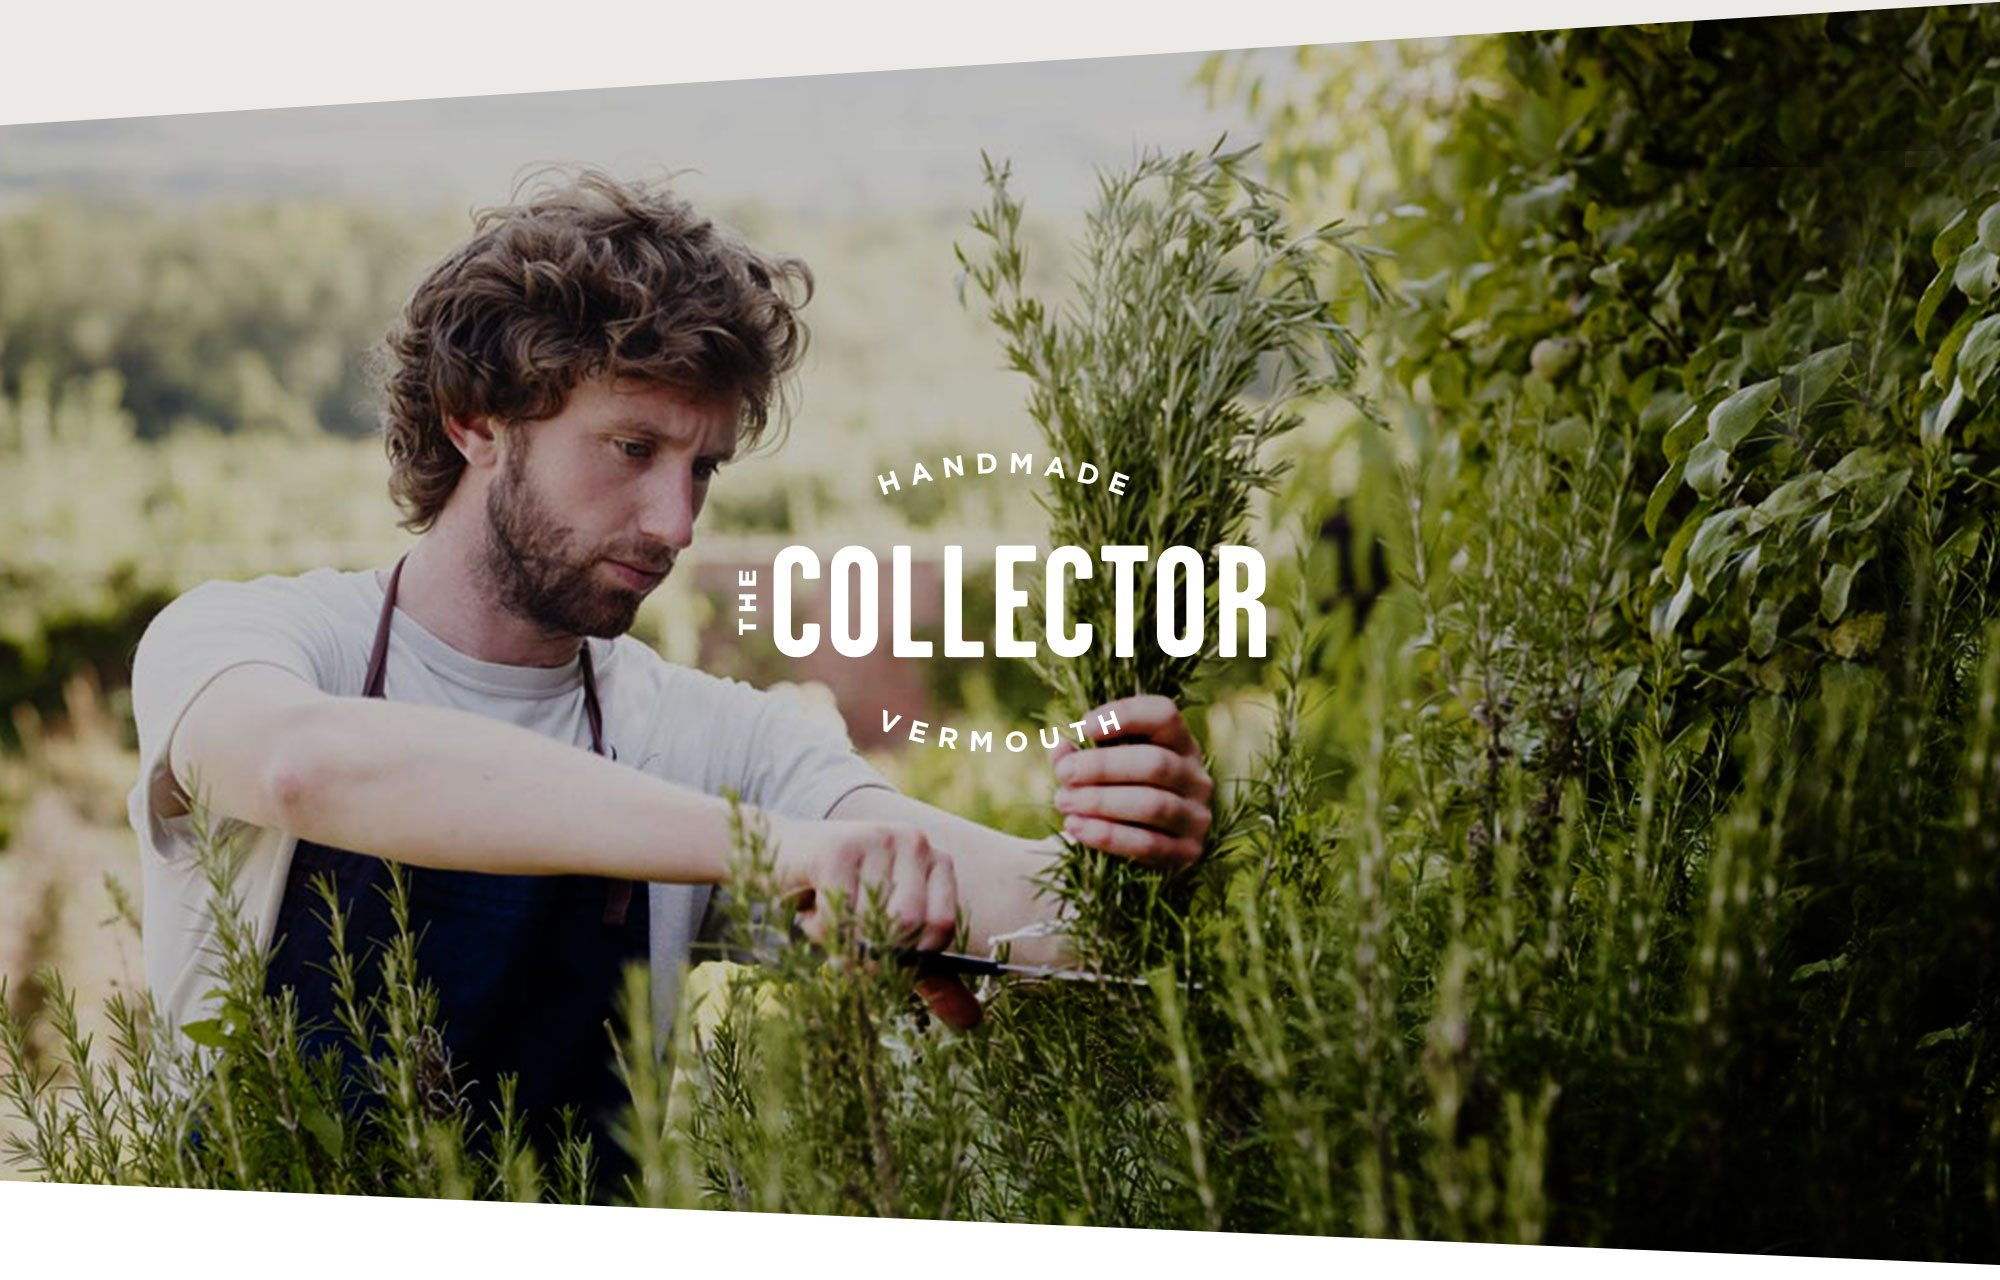 Collector vermouth brand identity logo design with brand photography